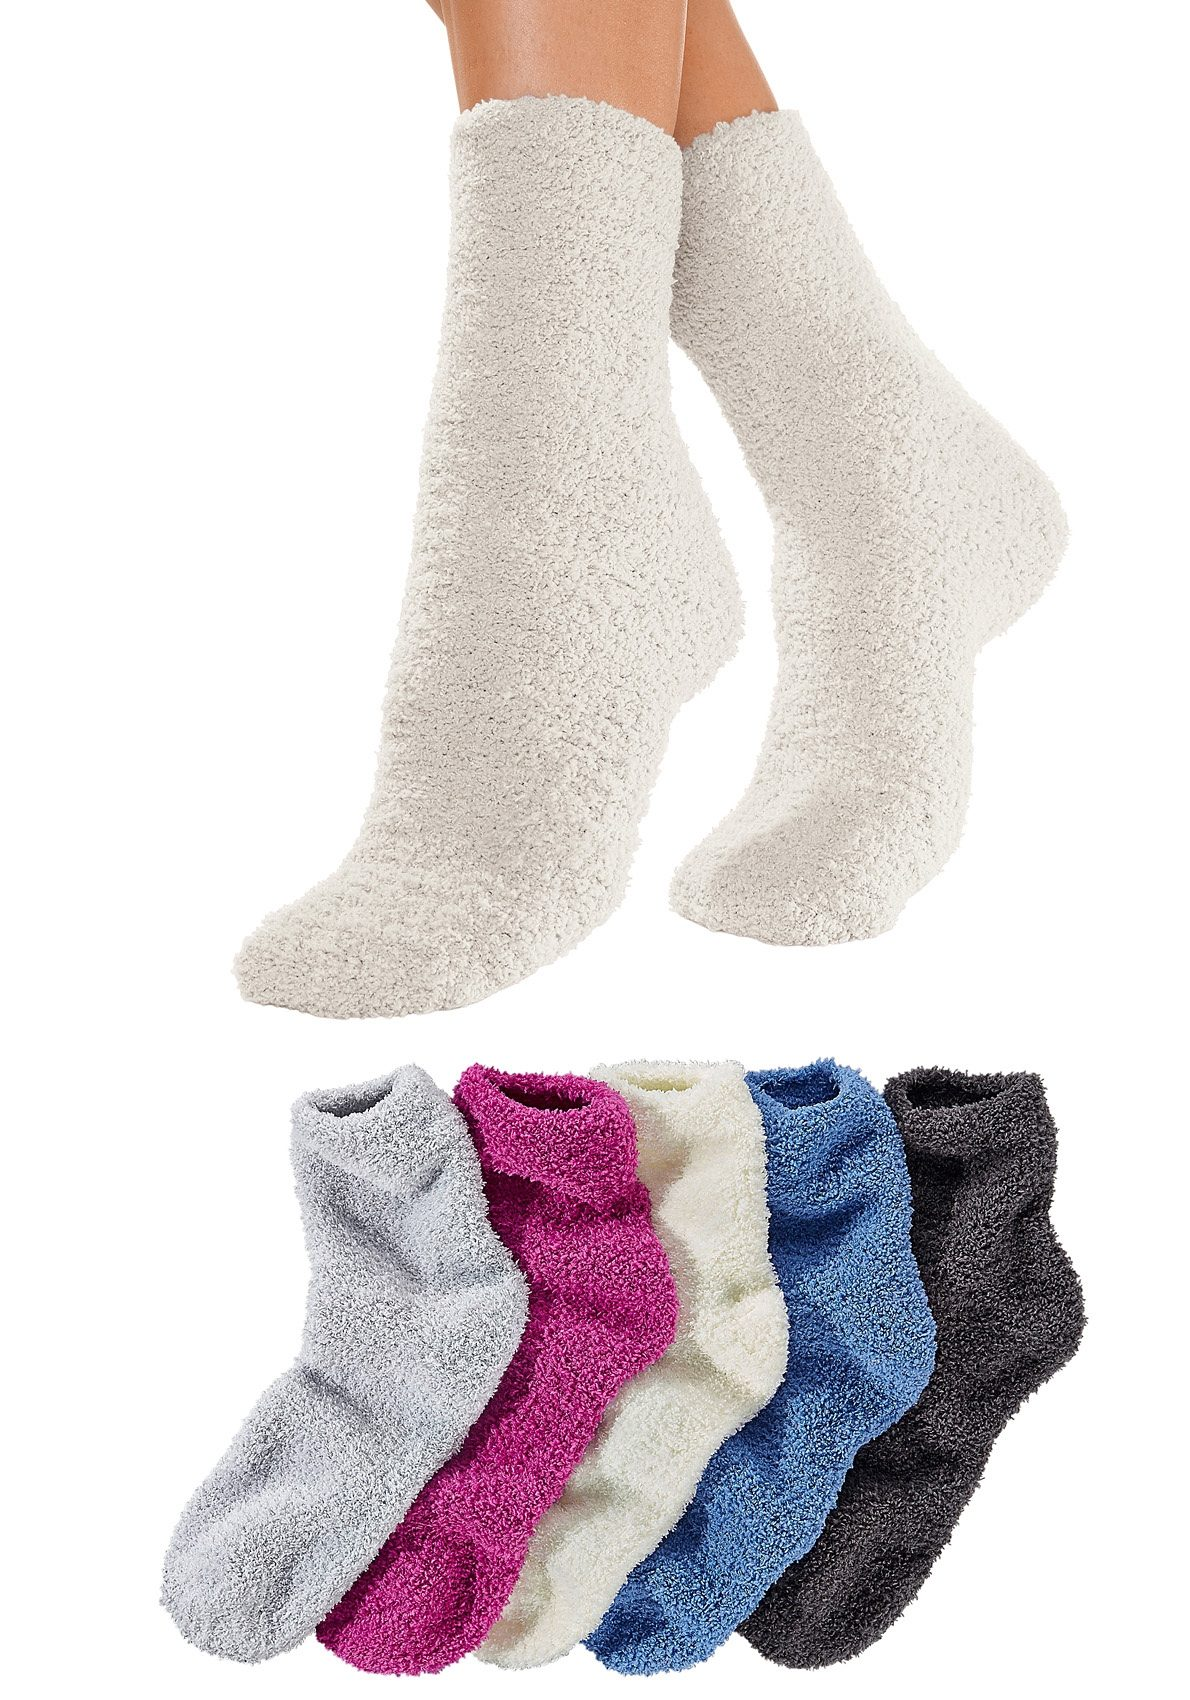 Lavana Basic Kuschelsocken (5 Paar) ideal als Bettsocken